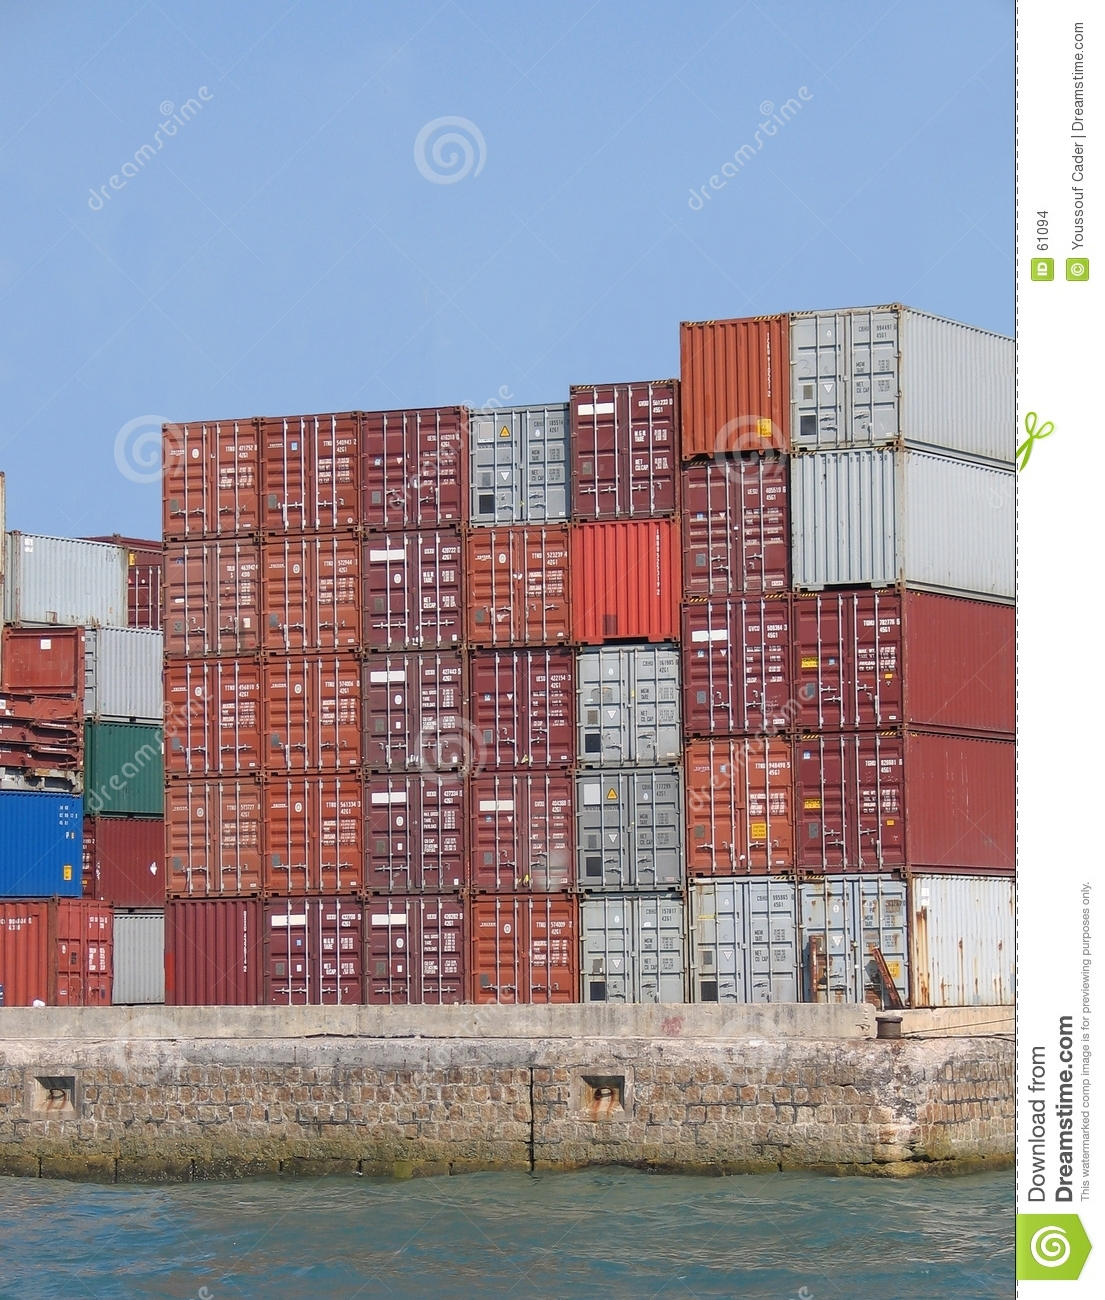 Containers-9257